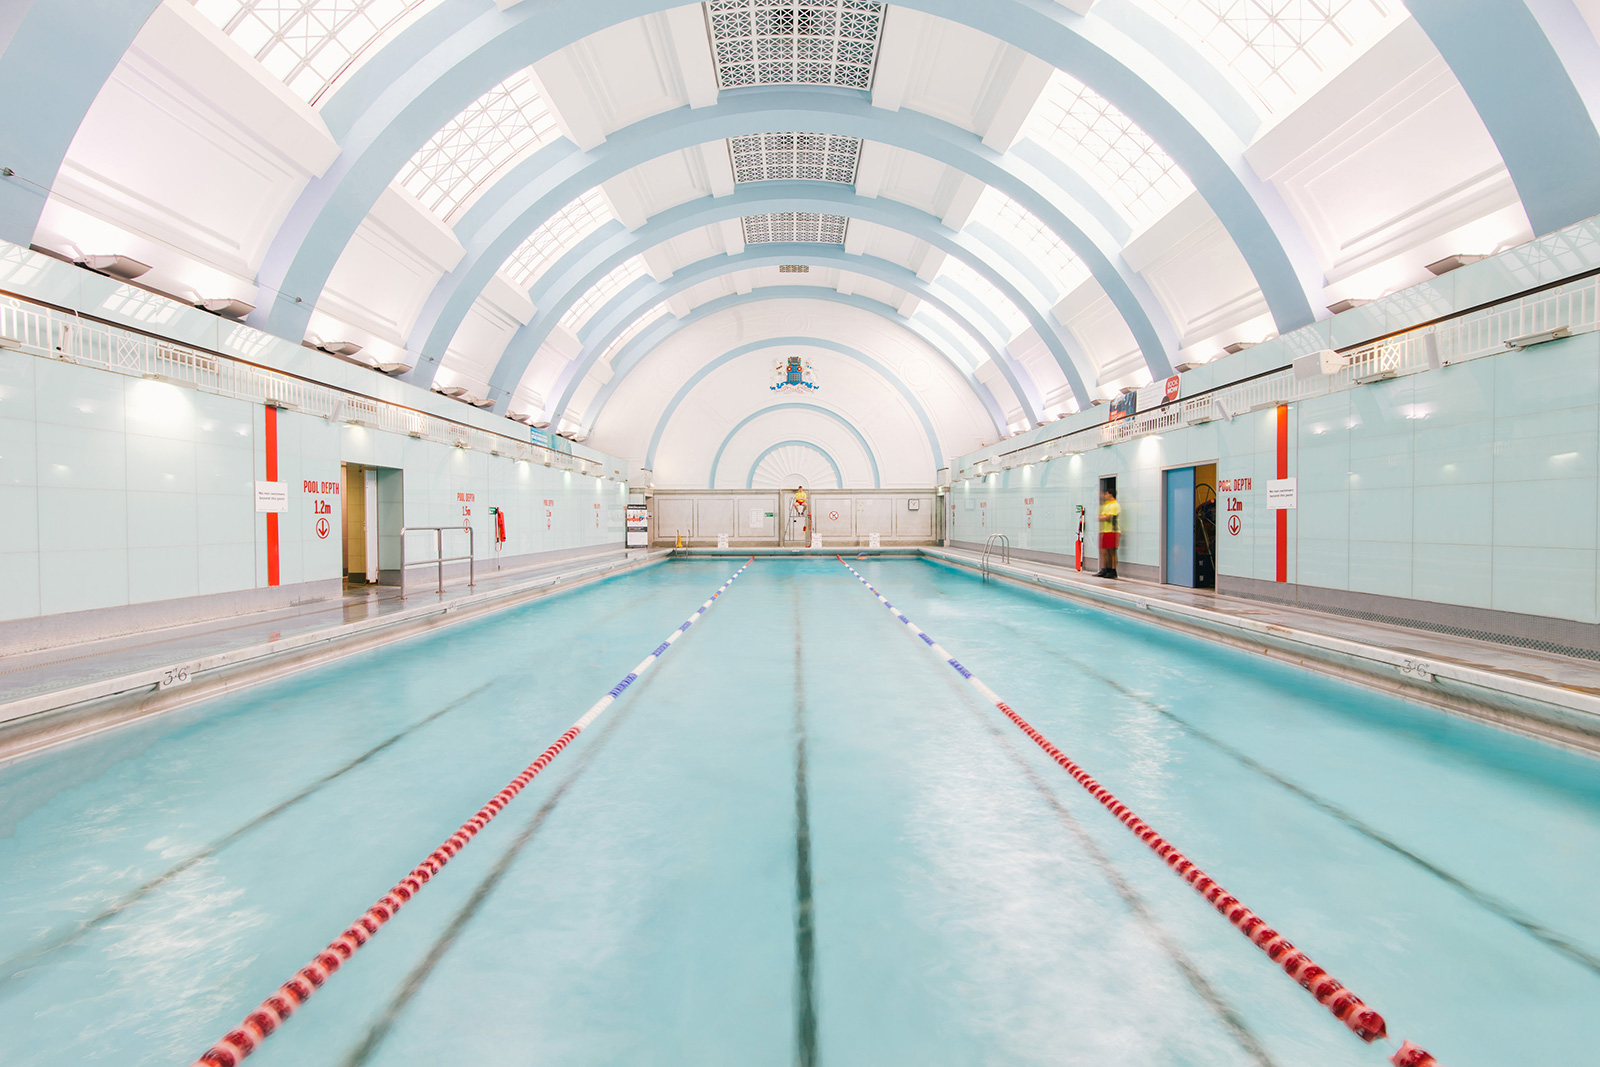 British swimming pools - Marshall Street Baths